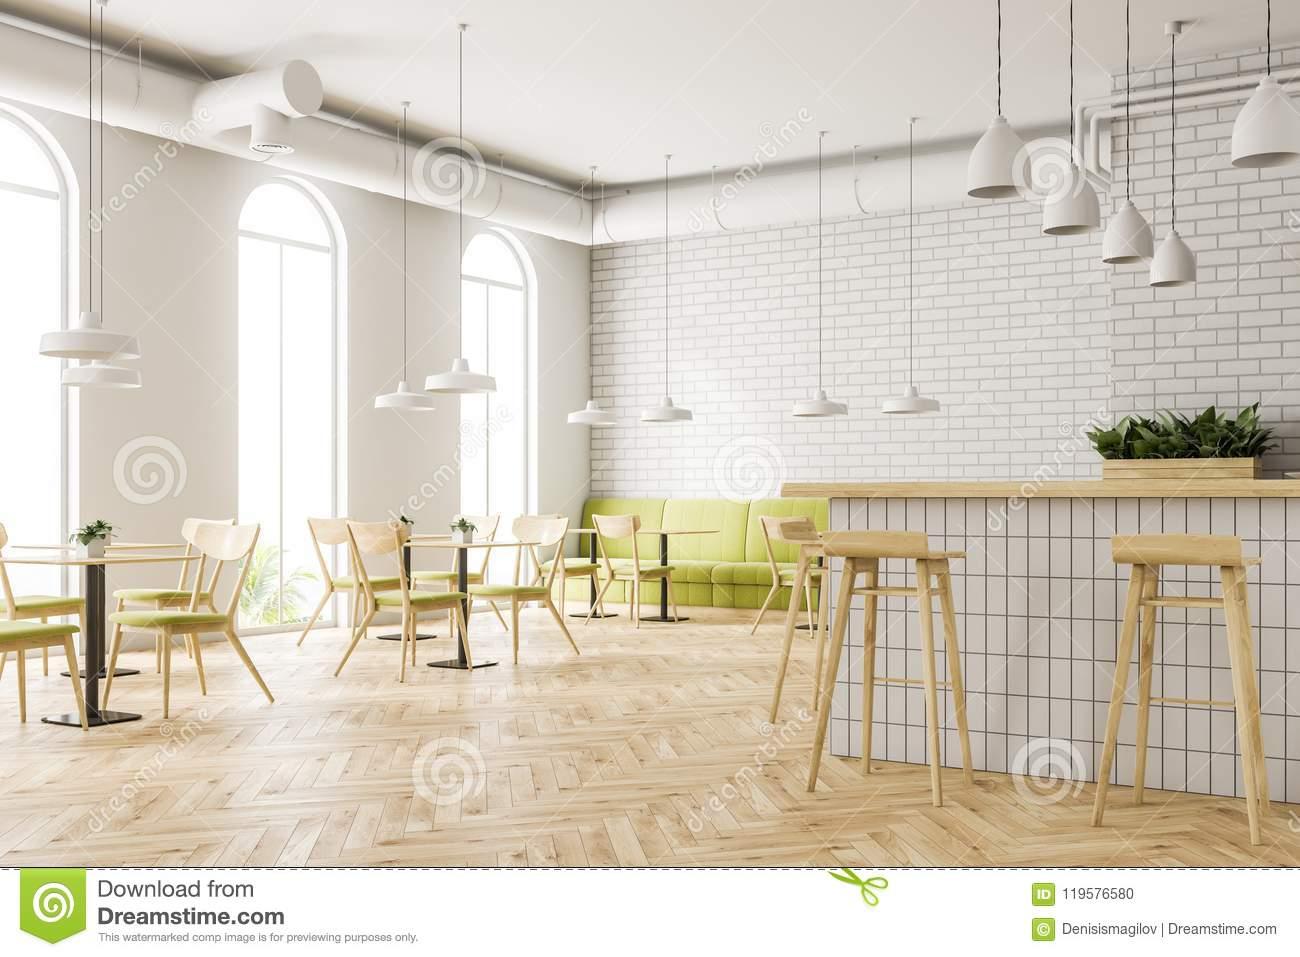 Industrial Style Cafe Corner Flower Beds Bar Stock Photo Image Of Indoor Geometric 119576580